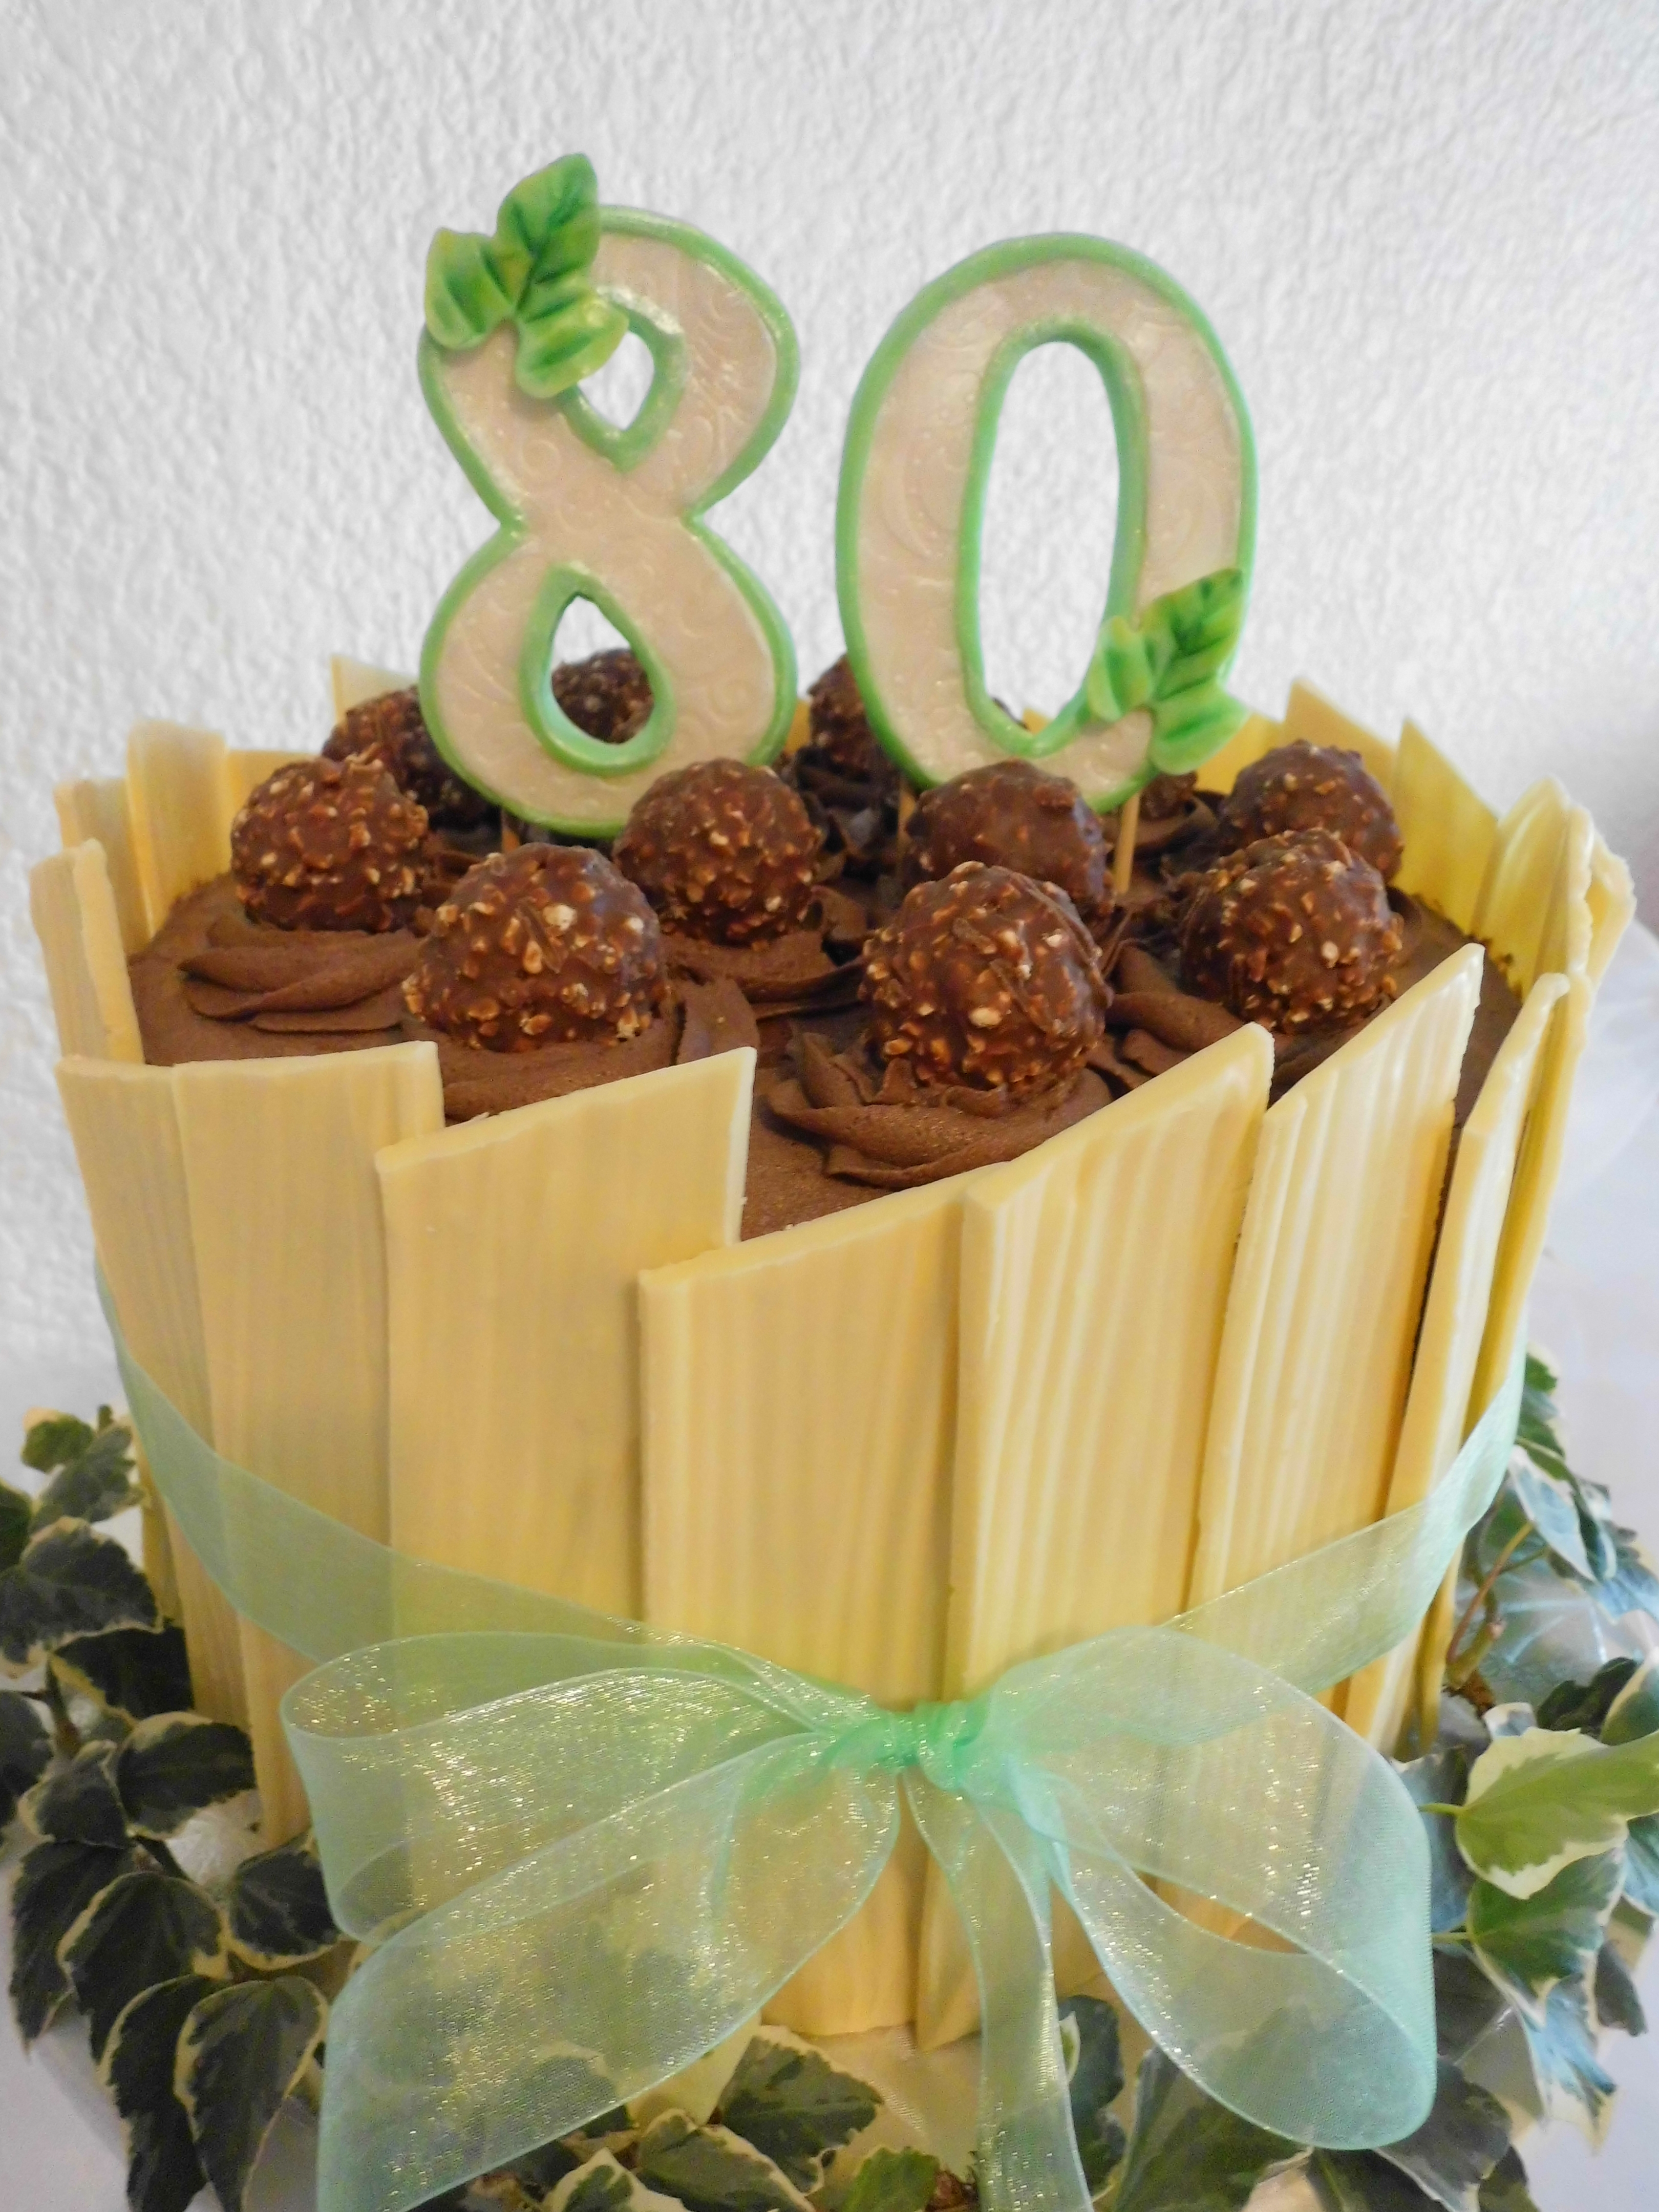 8Oth Birthday Cake With Chocolate Shards CakeCentralcom